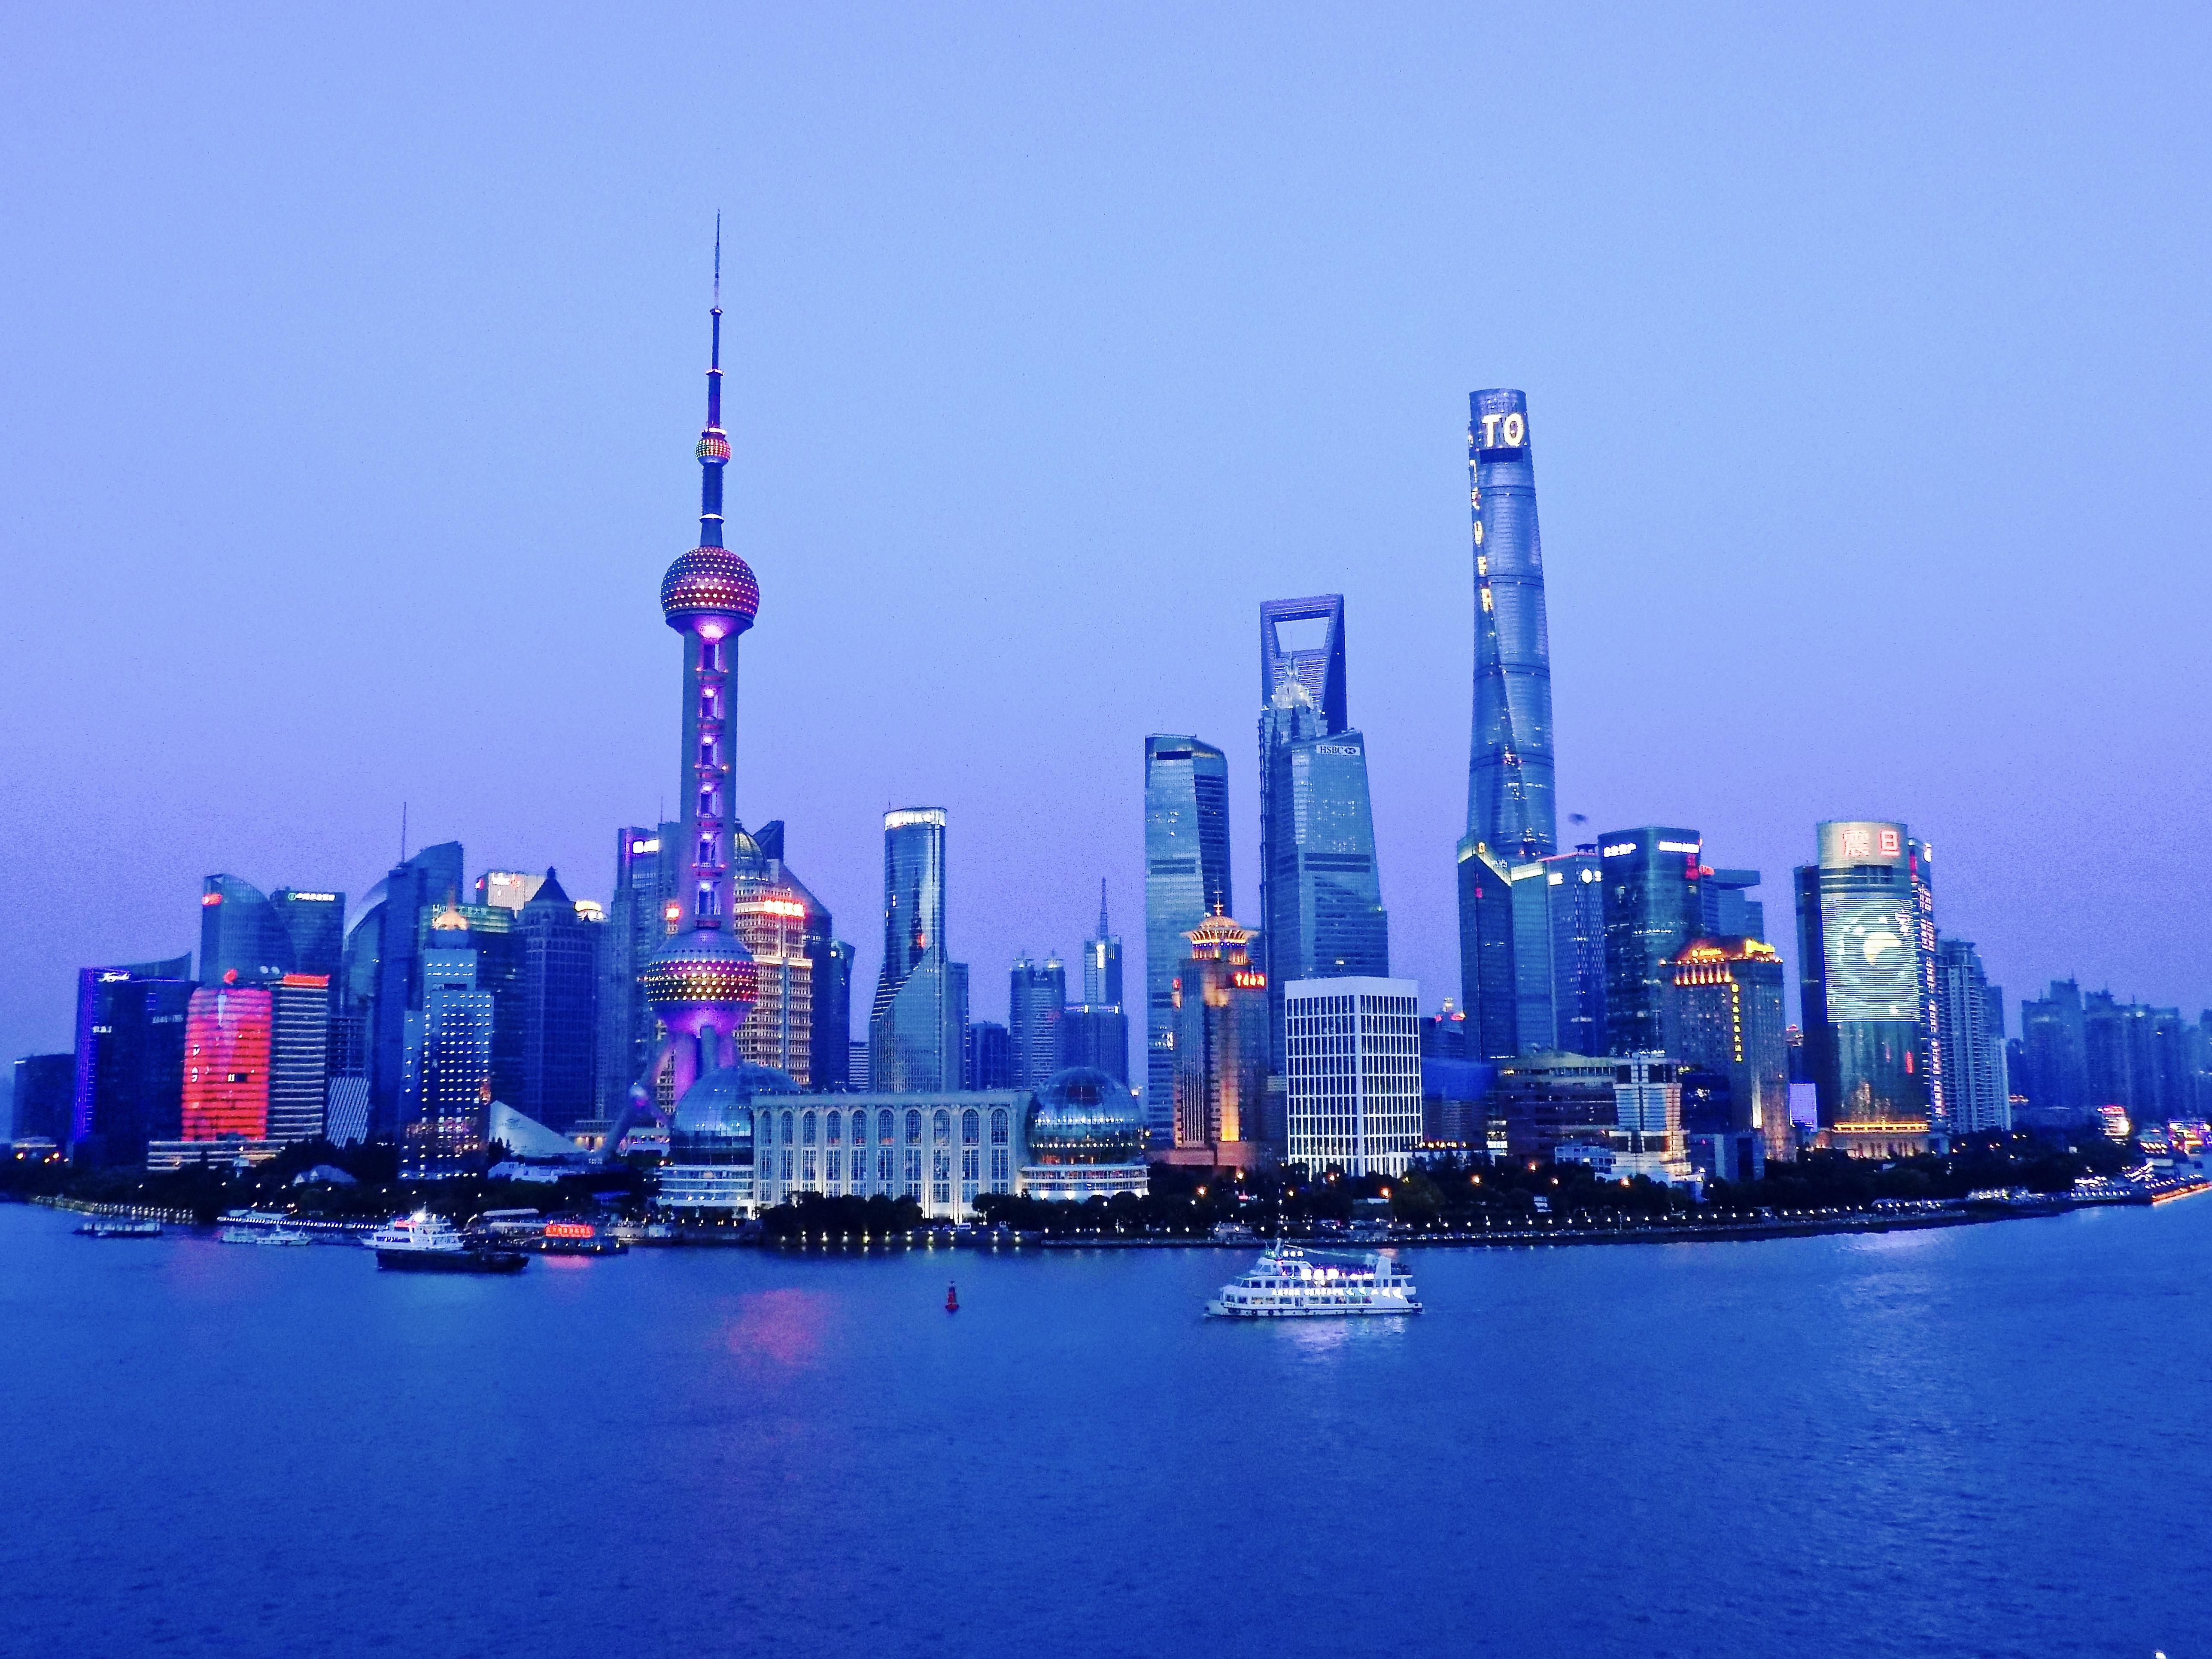 How To Get From Pudong Airport To The Bund